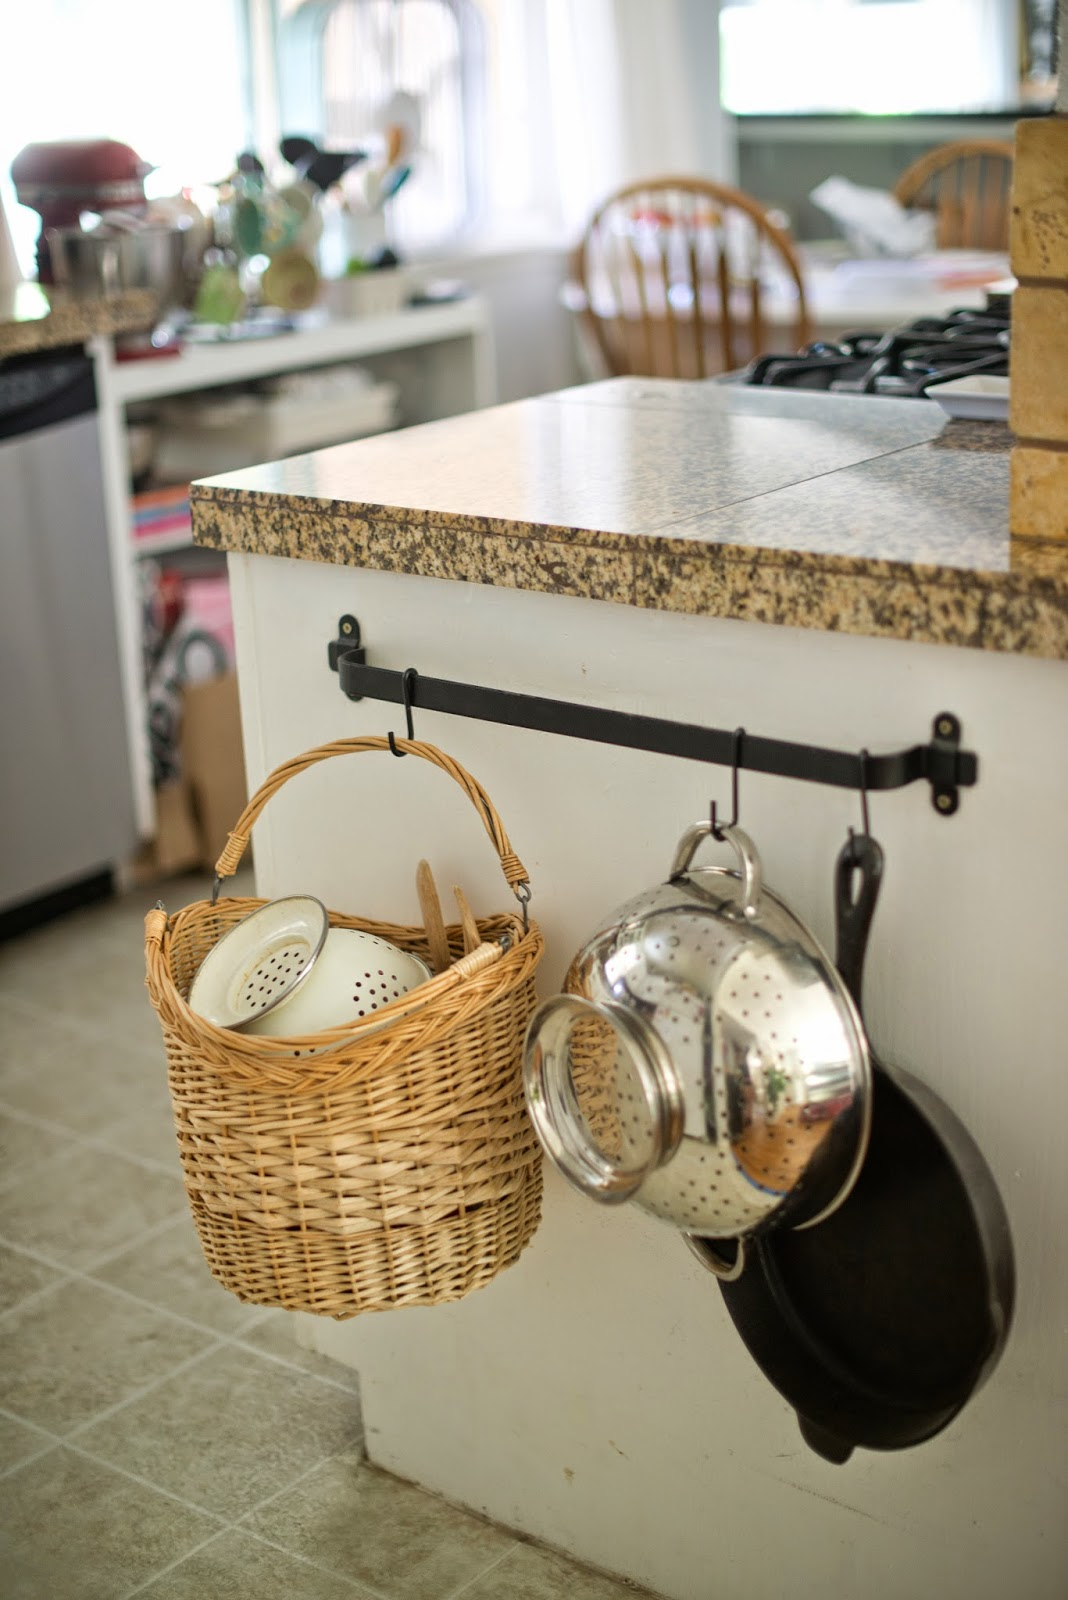 Use a towel bar to hold kitchen supplies. A cute way to organize the kitchen.